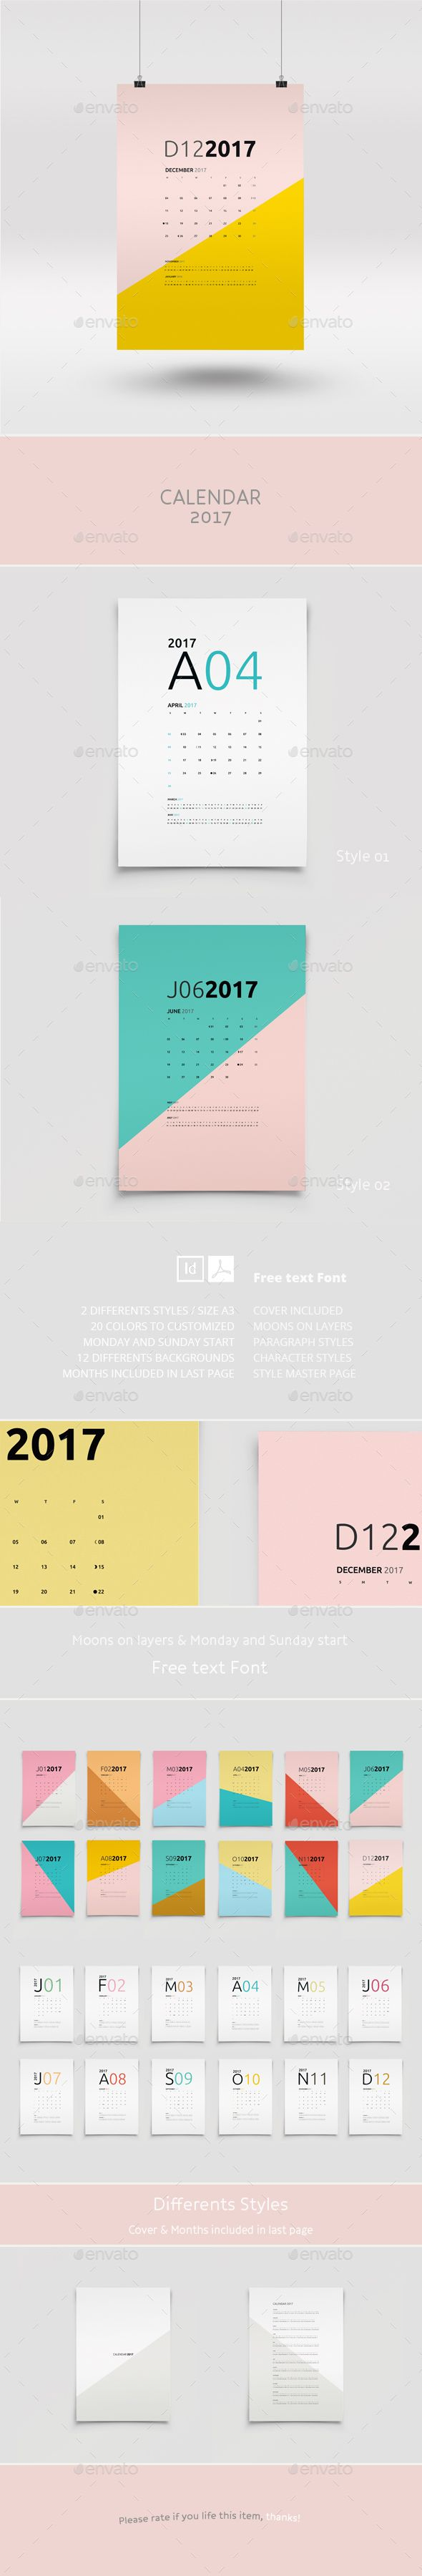 Calendar 2017 — InDesign Template #month • Download ➝ https ...